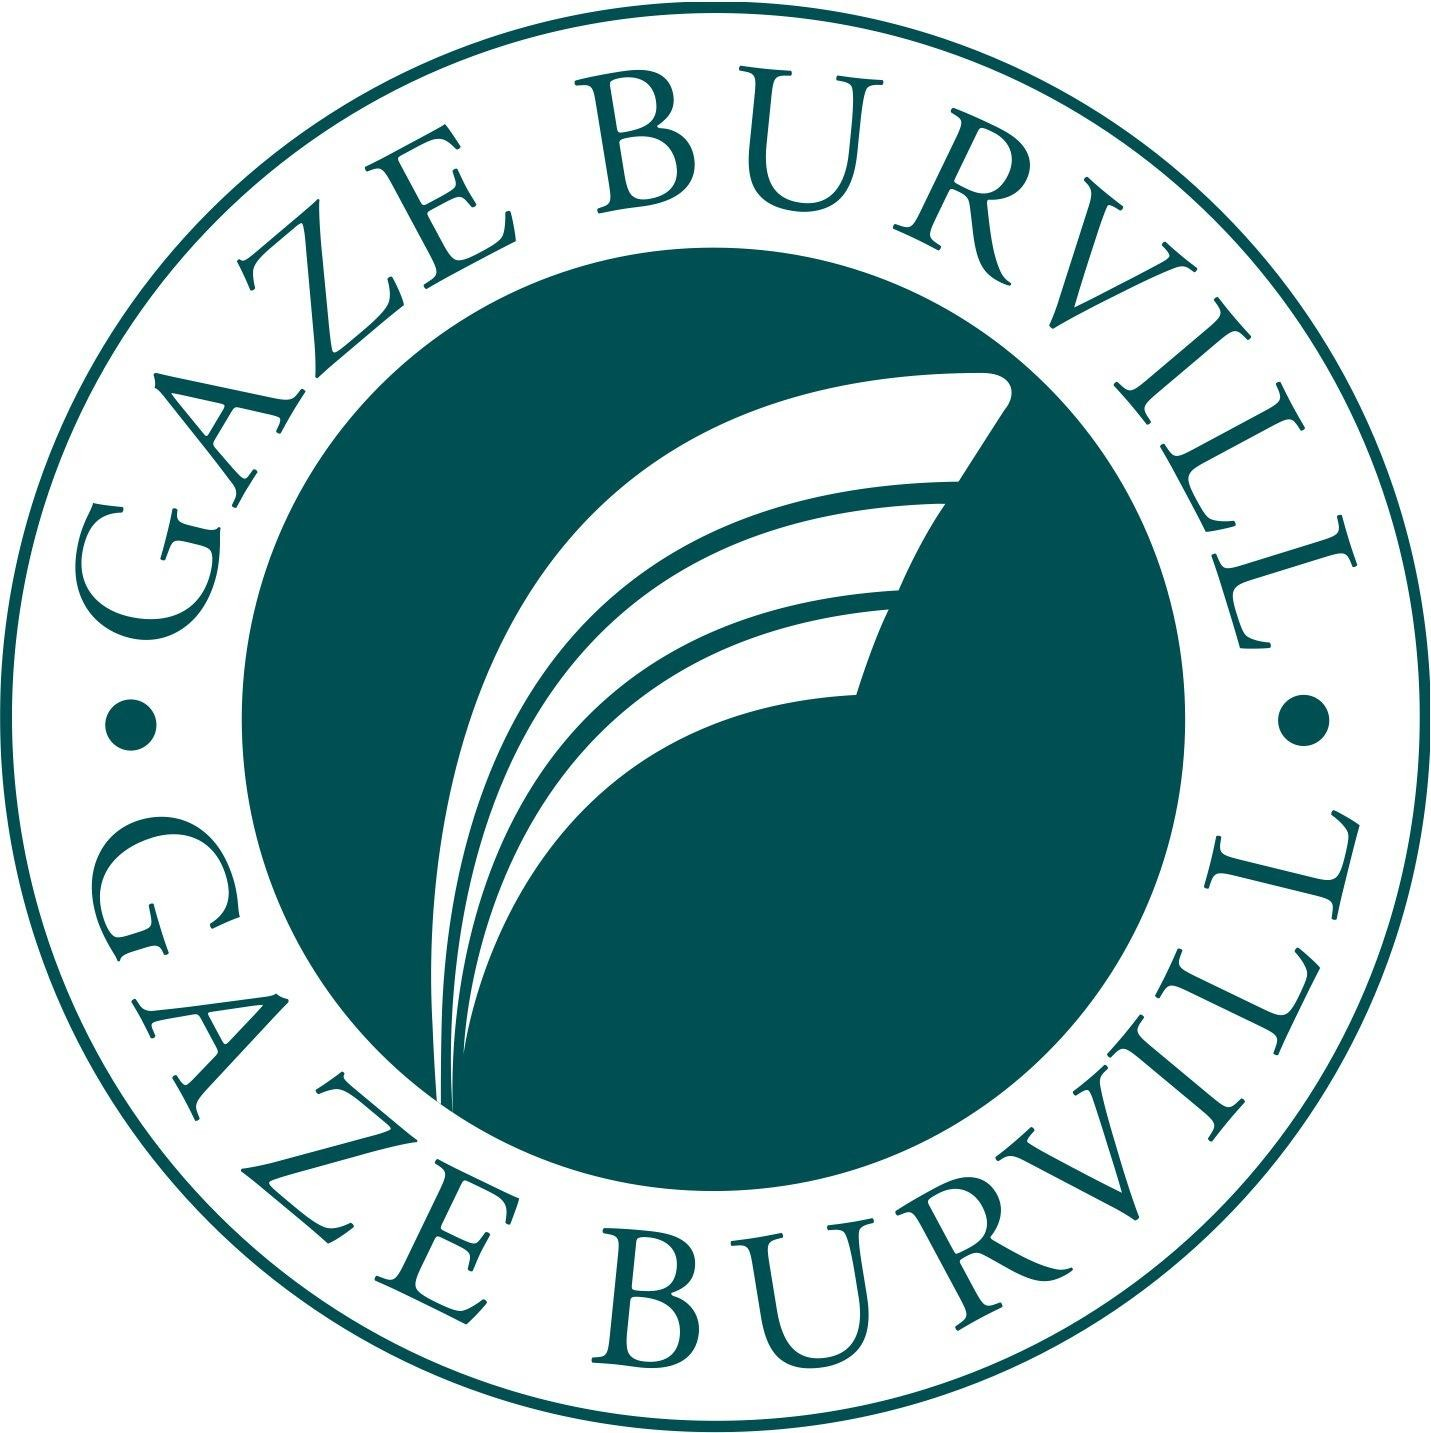 Gaze Burvill Ltd